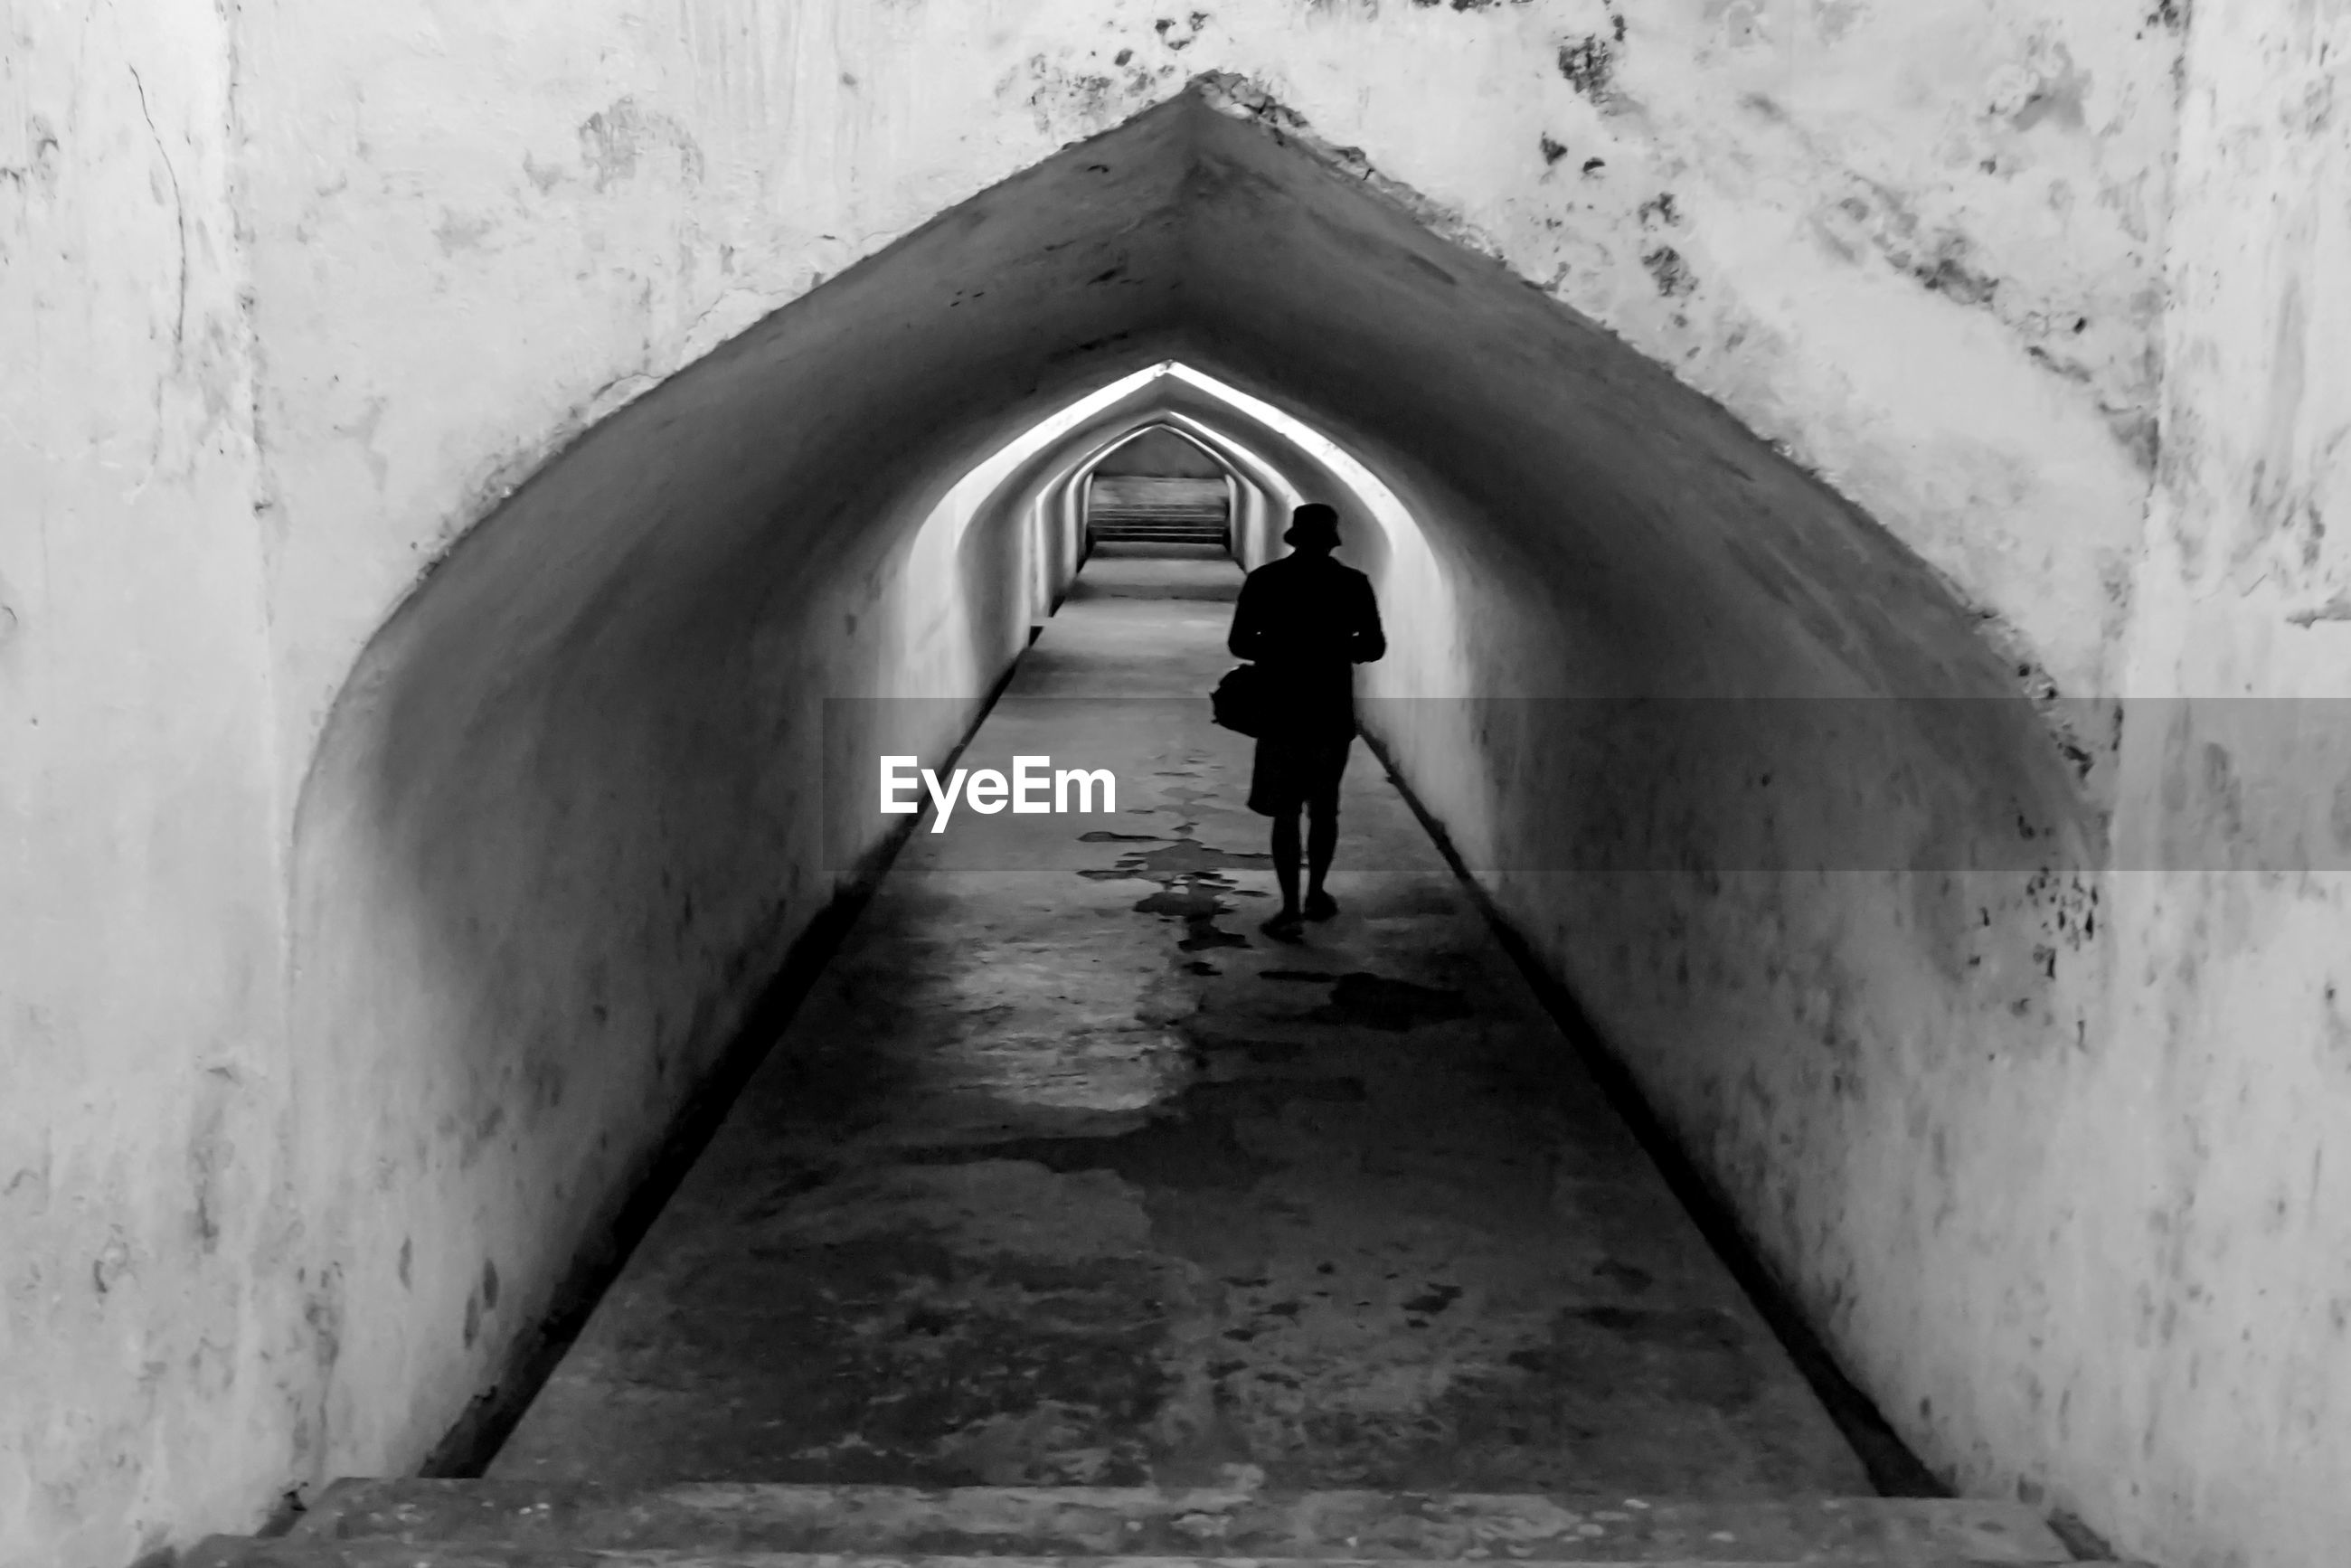 REAR VIEW OF SILHOUETTE MAN WALKING IN TUNNEL AMIDST BUILDING